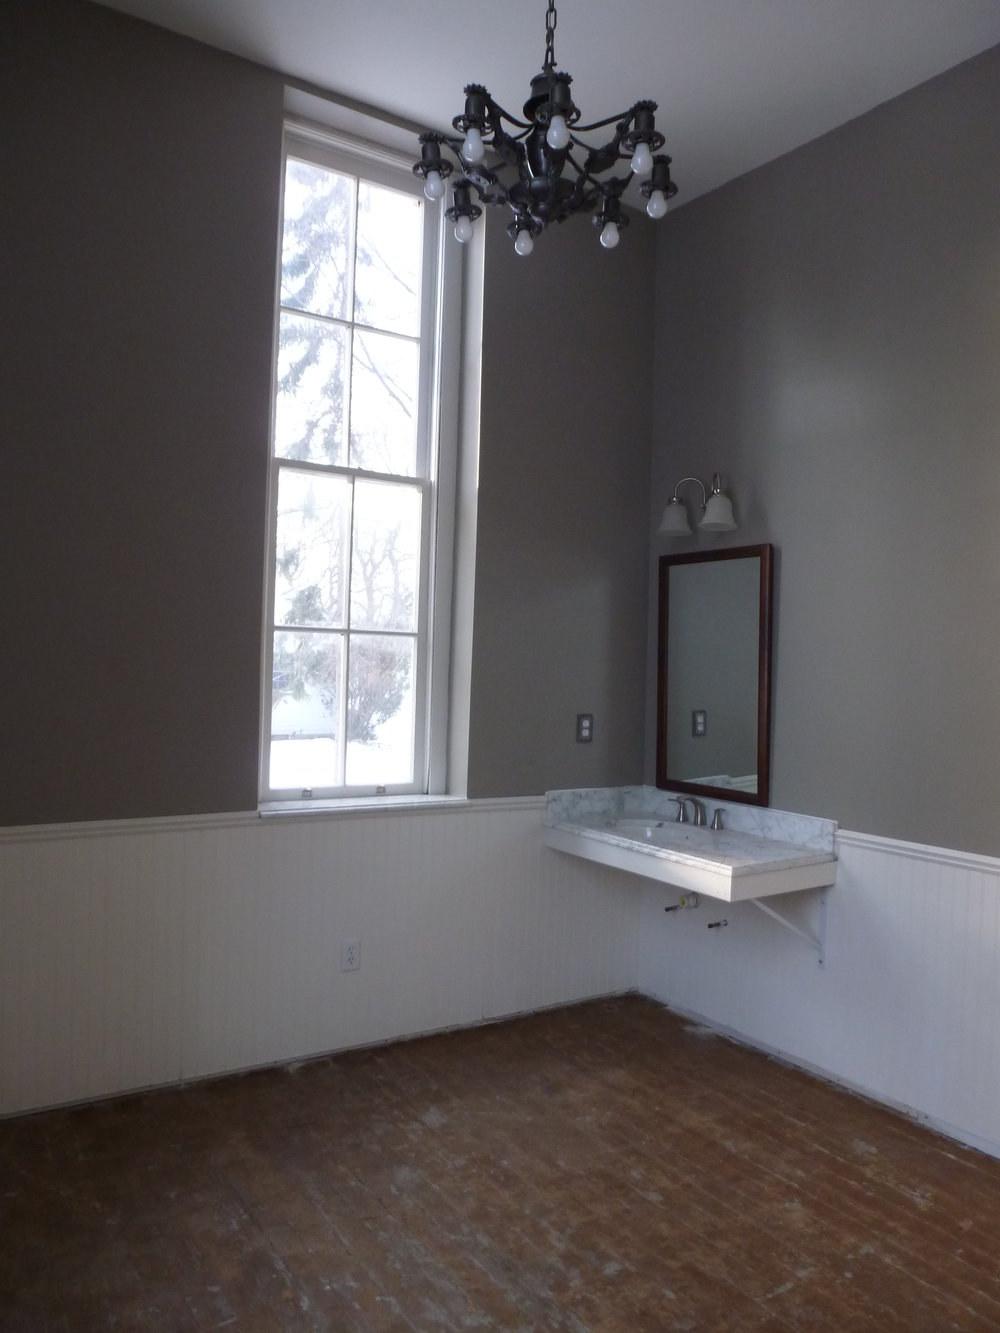 Wainscoting installedand sink mounted